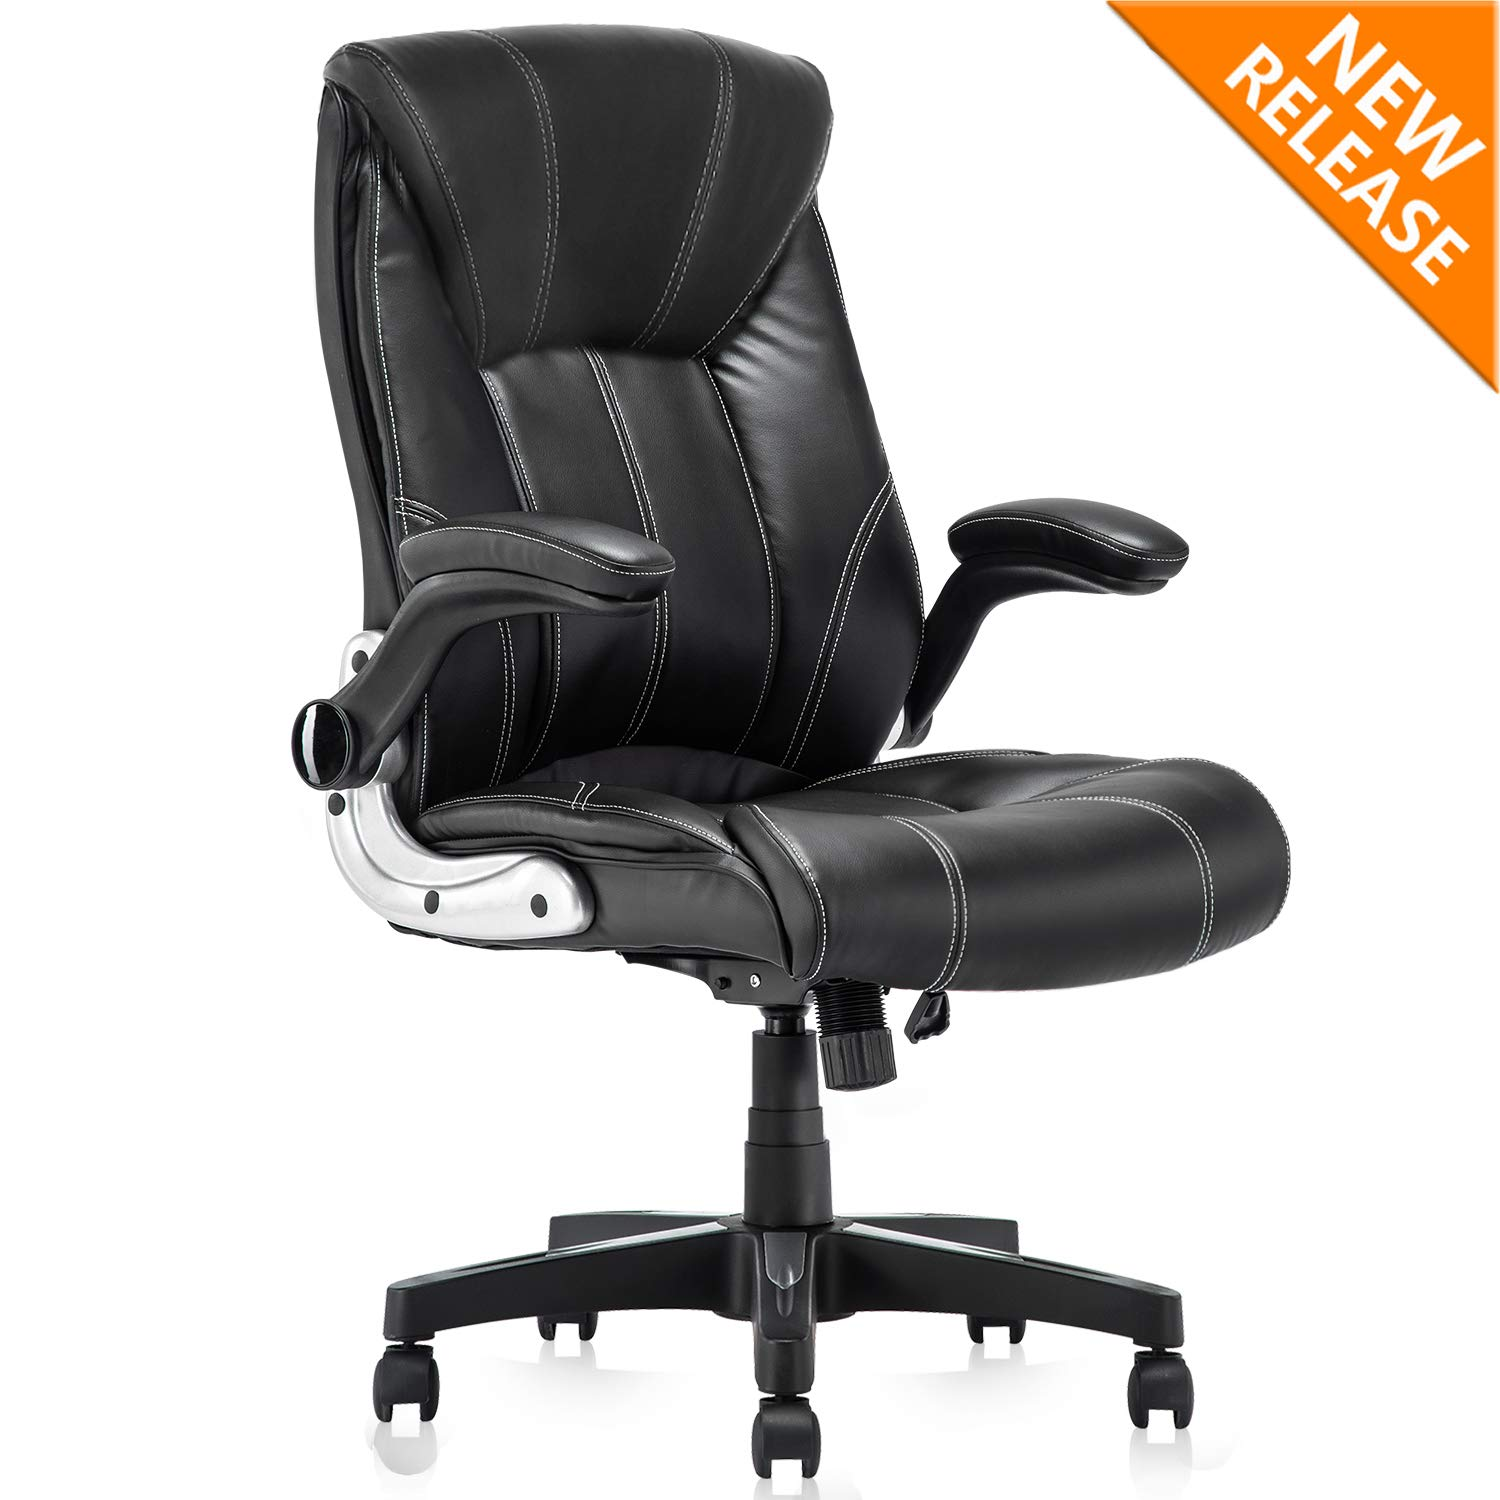 YAMASORO Leather Executive Office Chair Flip up Arm Rests,Ergonomic Chair Comfortable Massage,Computer Desk Chairs Black Task Chair with Wheels for Home Office by YAMASORO